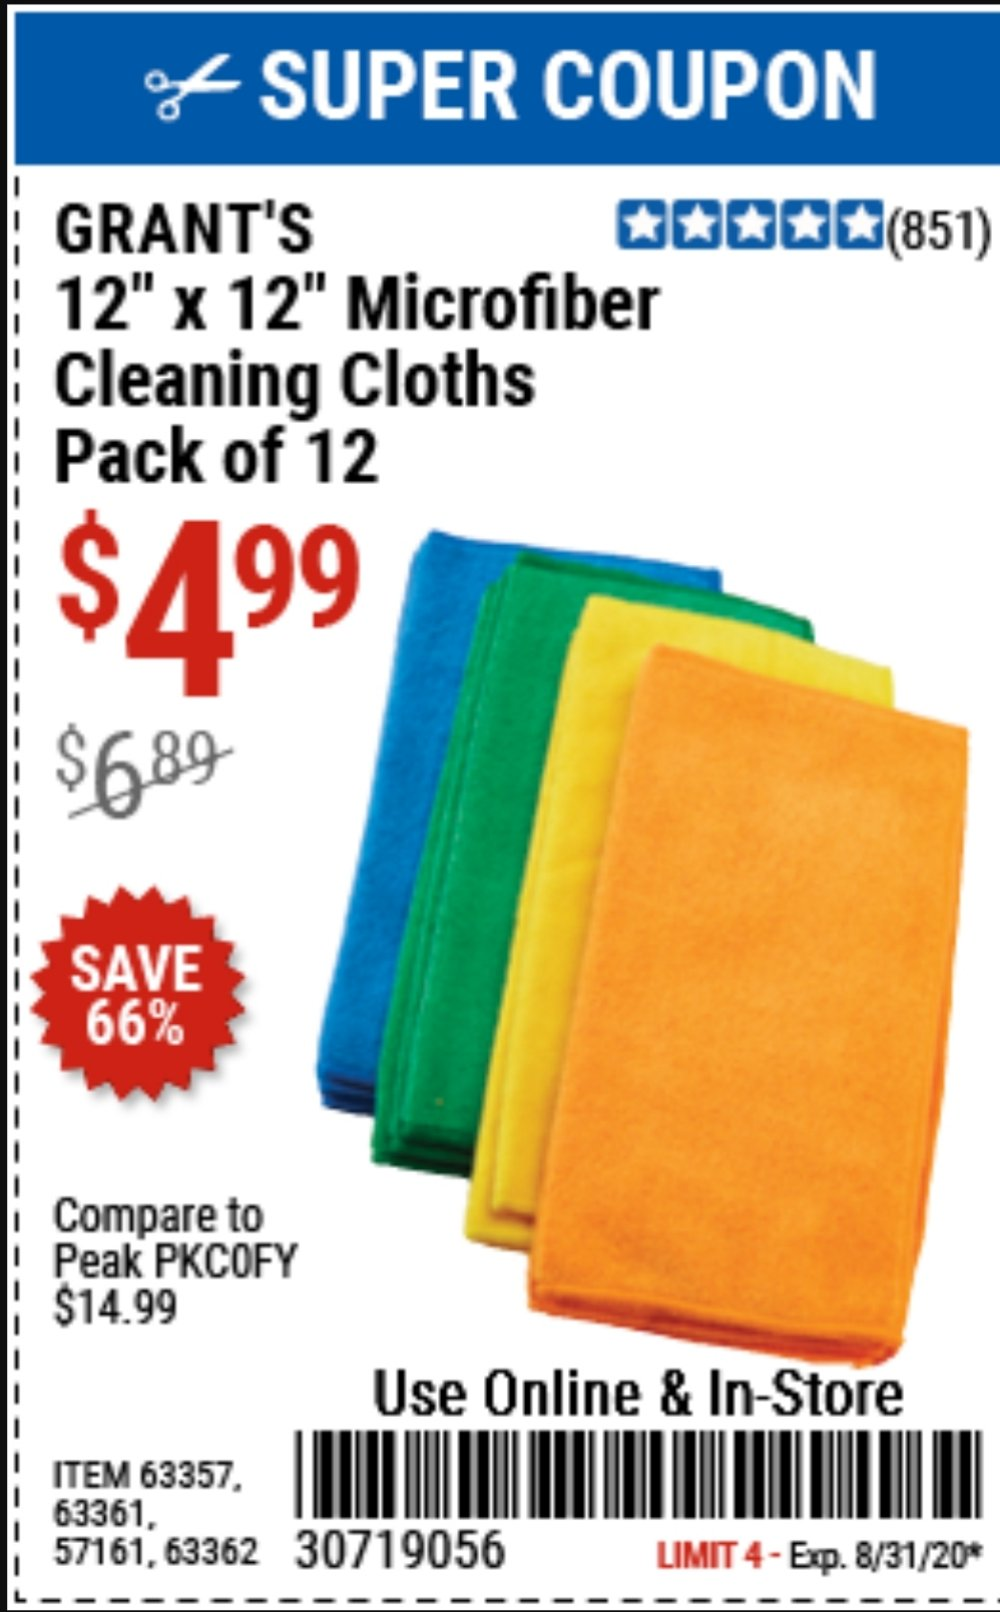 Harbor Freight Coupon, HF Coupons - Microfiber Cleaning Cloths Pack Of 12